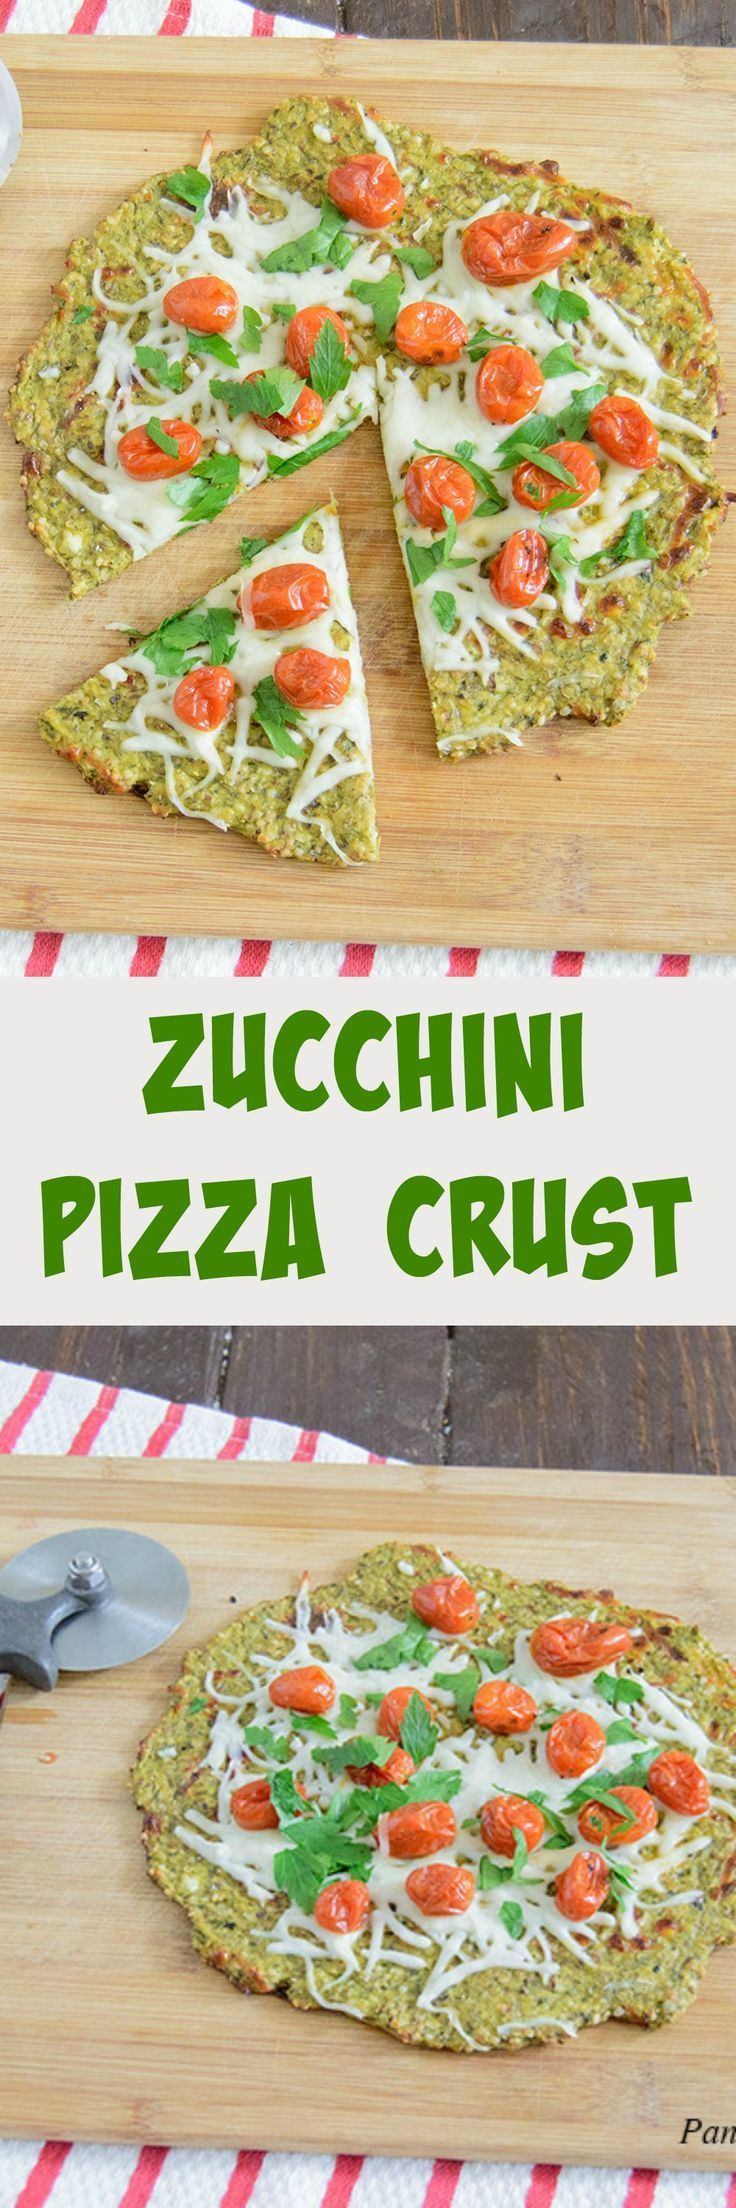 Zucchini Crust Pizza Super Easy Low Carb Pizza Crust That Gets Crispy And Holds Up